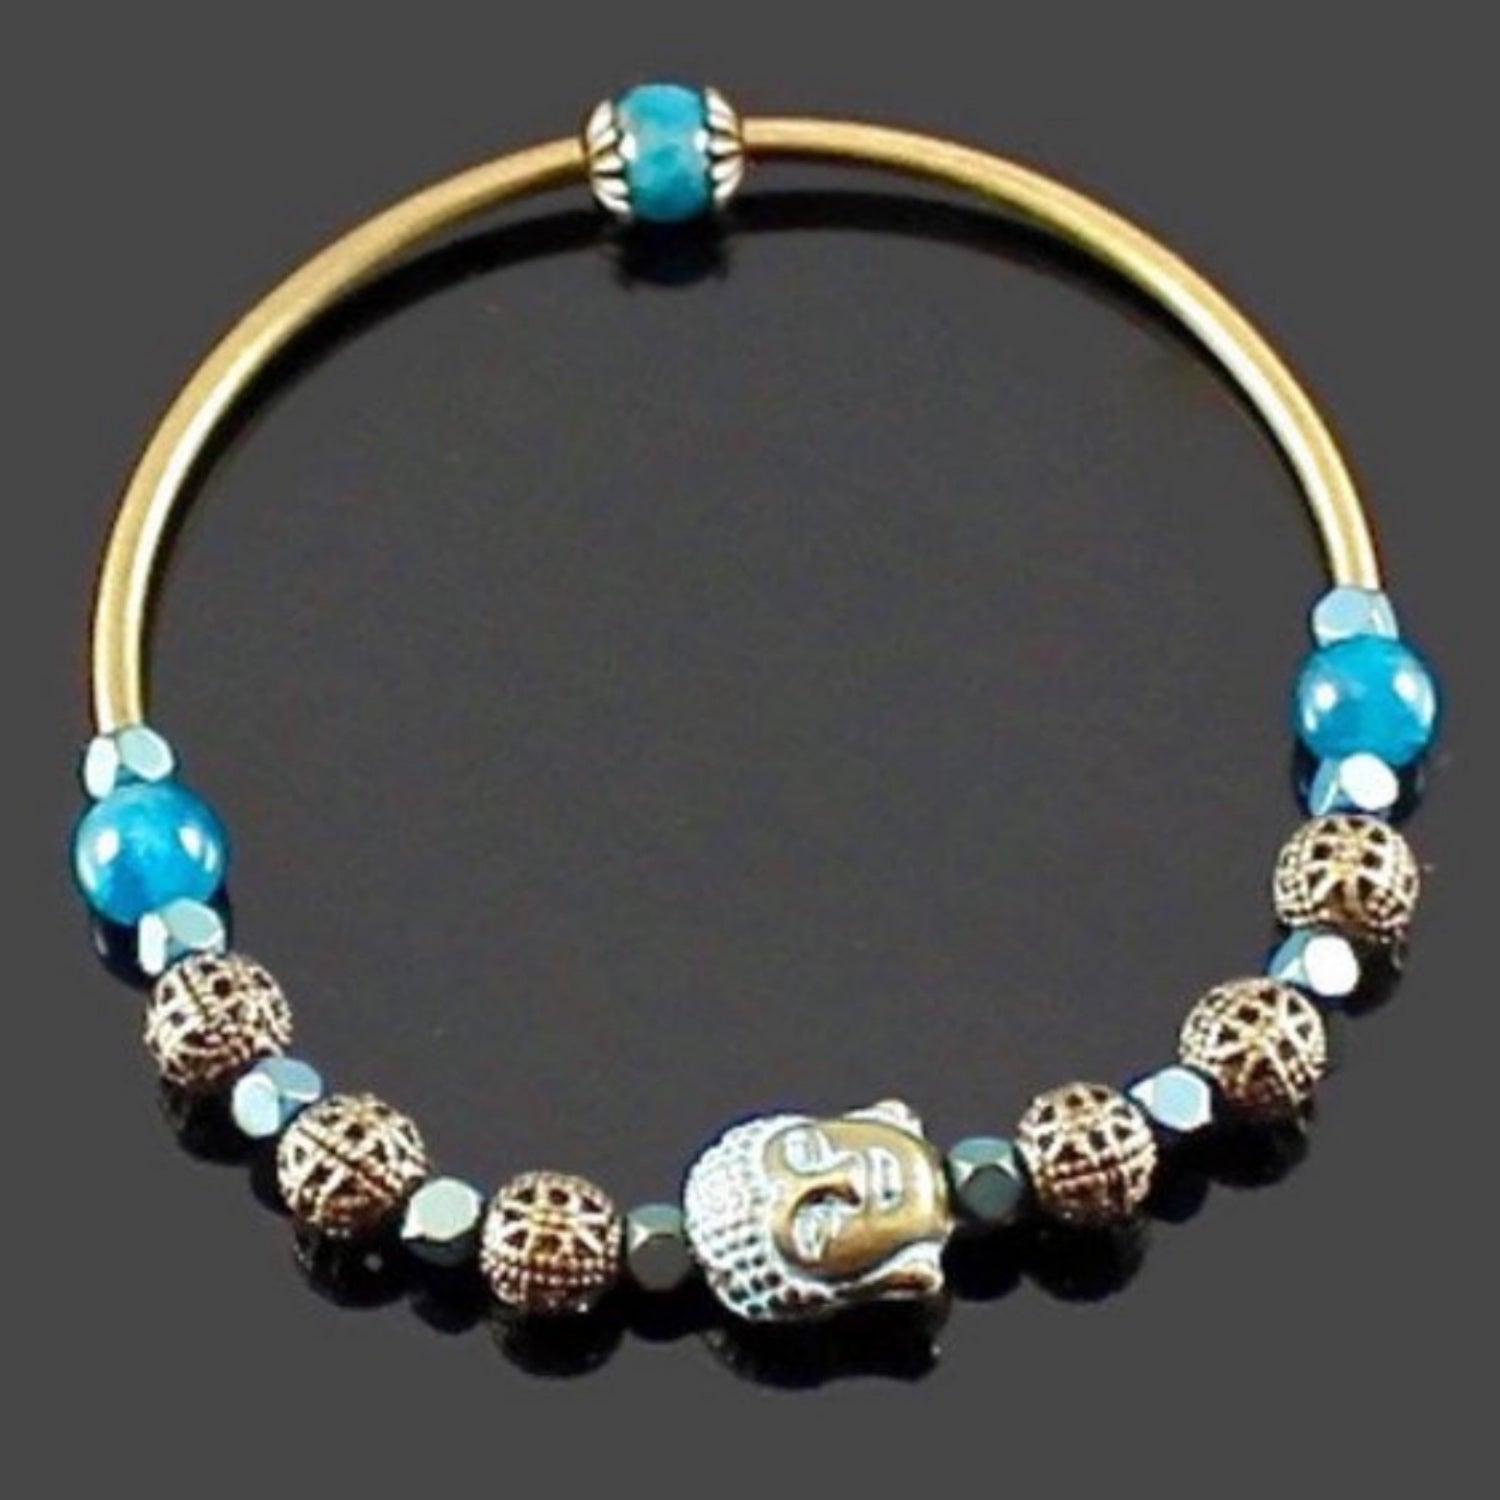 Women's Apatite Buddha Stretch Bangle Bracelet